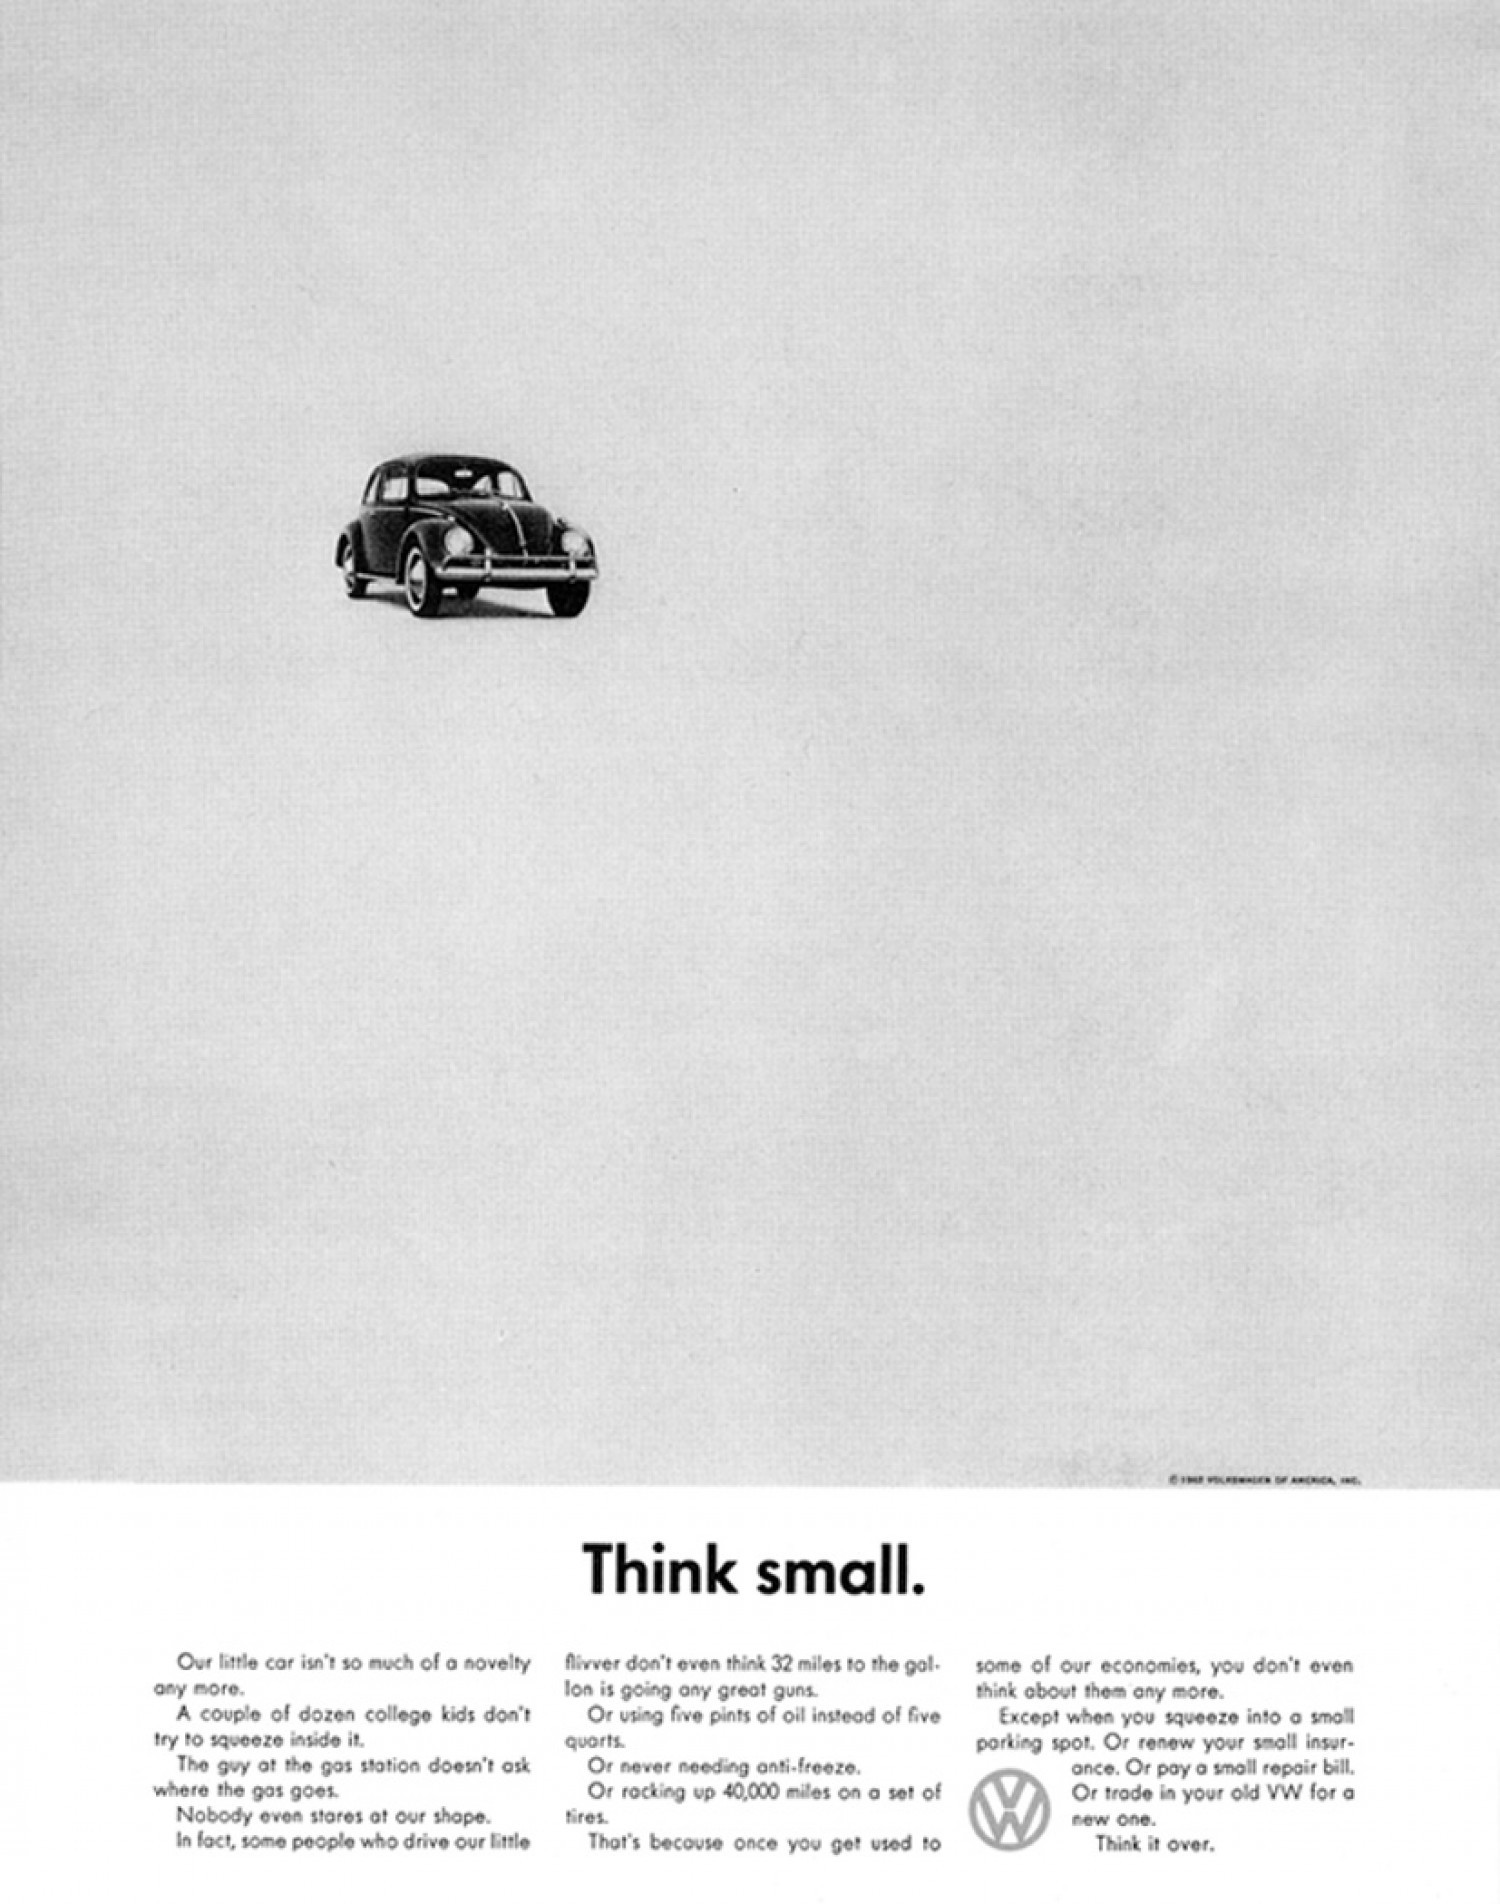 The Ad That Changed Advertising Bill Bernbach Had A Problem Carl Hahn By Mark Hamilton The Agency Medium Shop for farfegnugen art from the world's greatest living artists. the ad that changed advertising bill